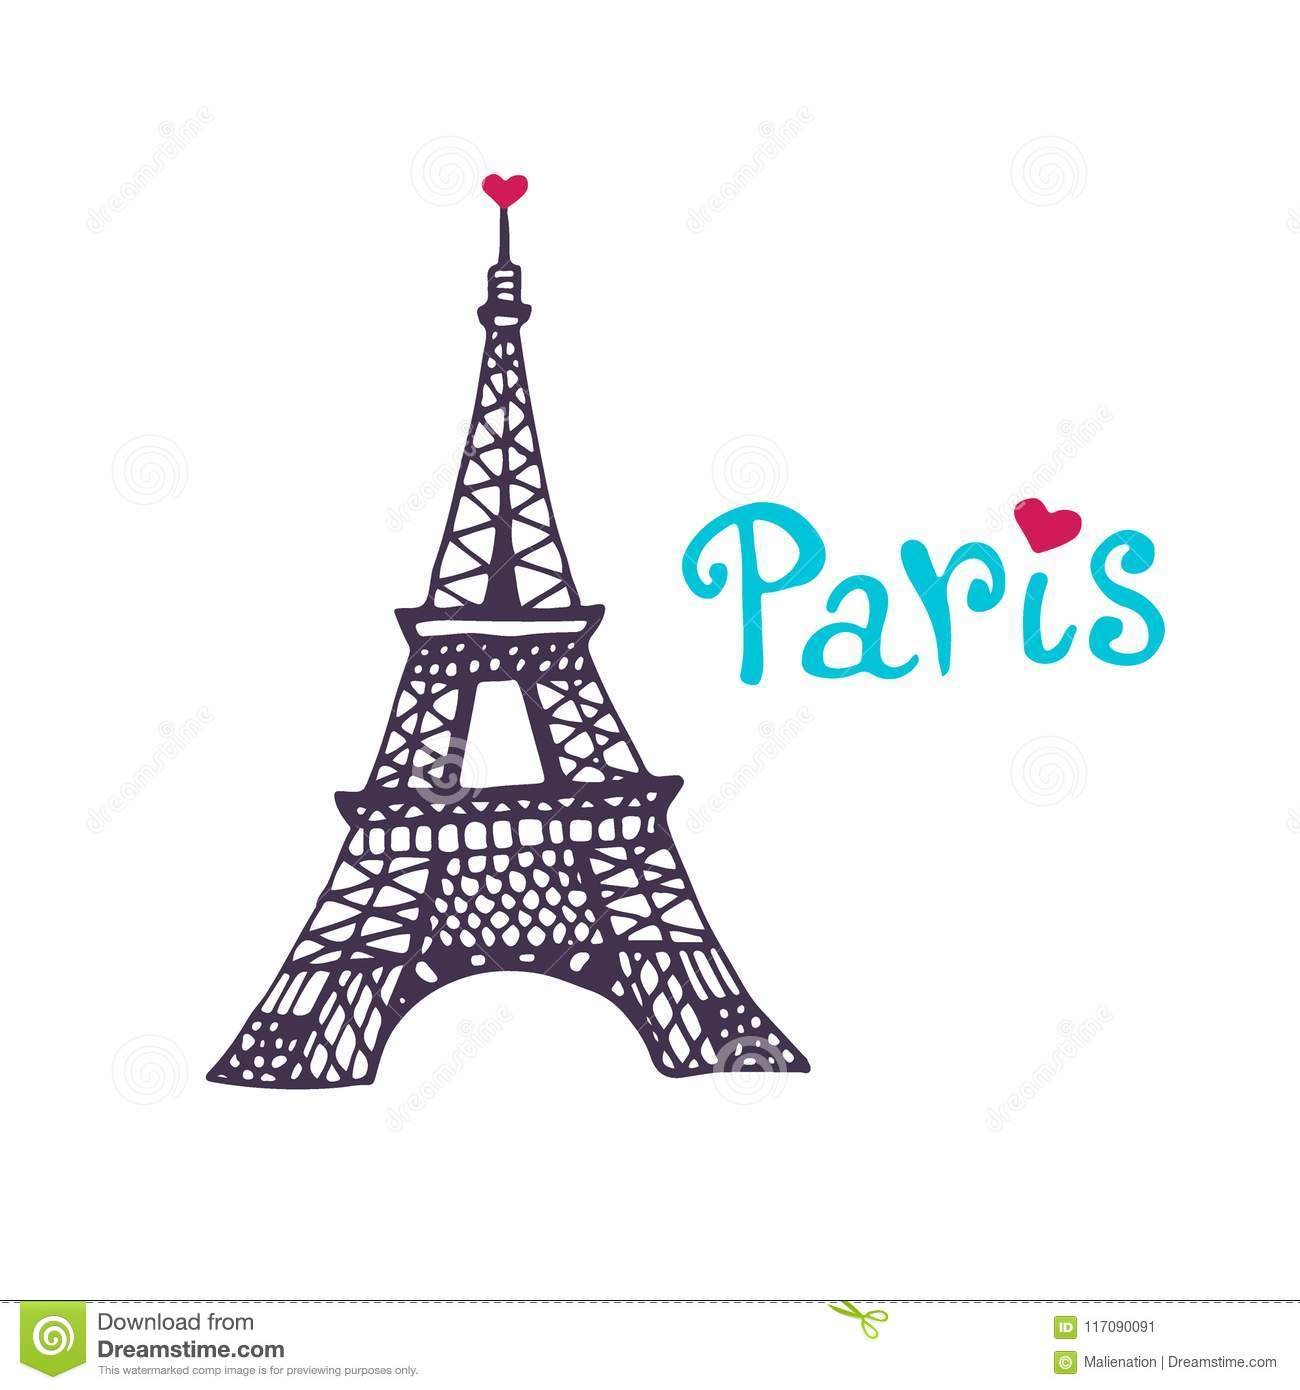 image about Printable Pictures of the Eiffel Tower called Eiffel Tower Vector Icon. Hand Drawn Print. Paris Card